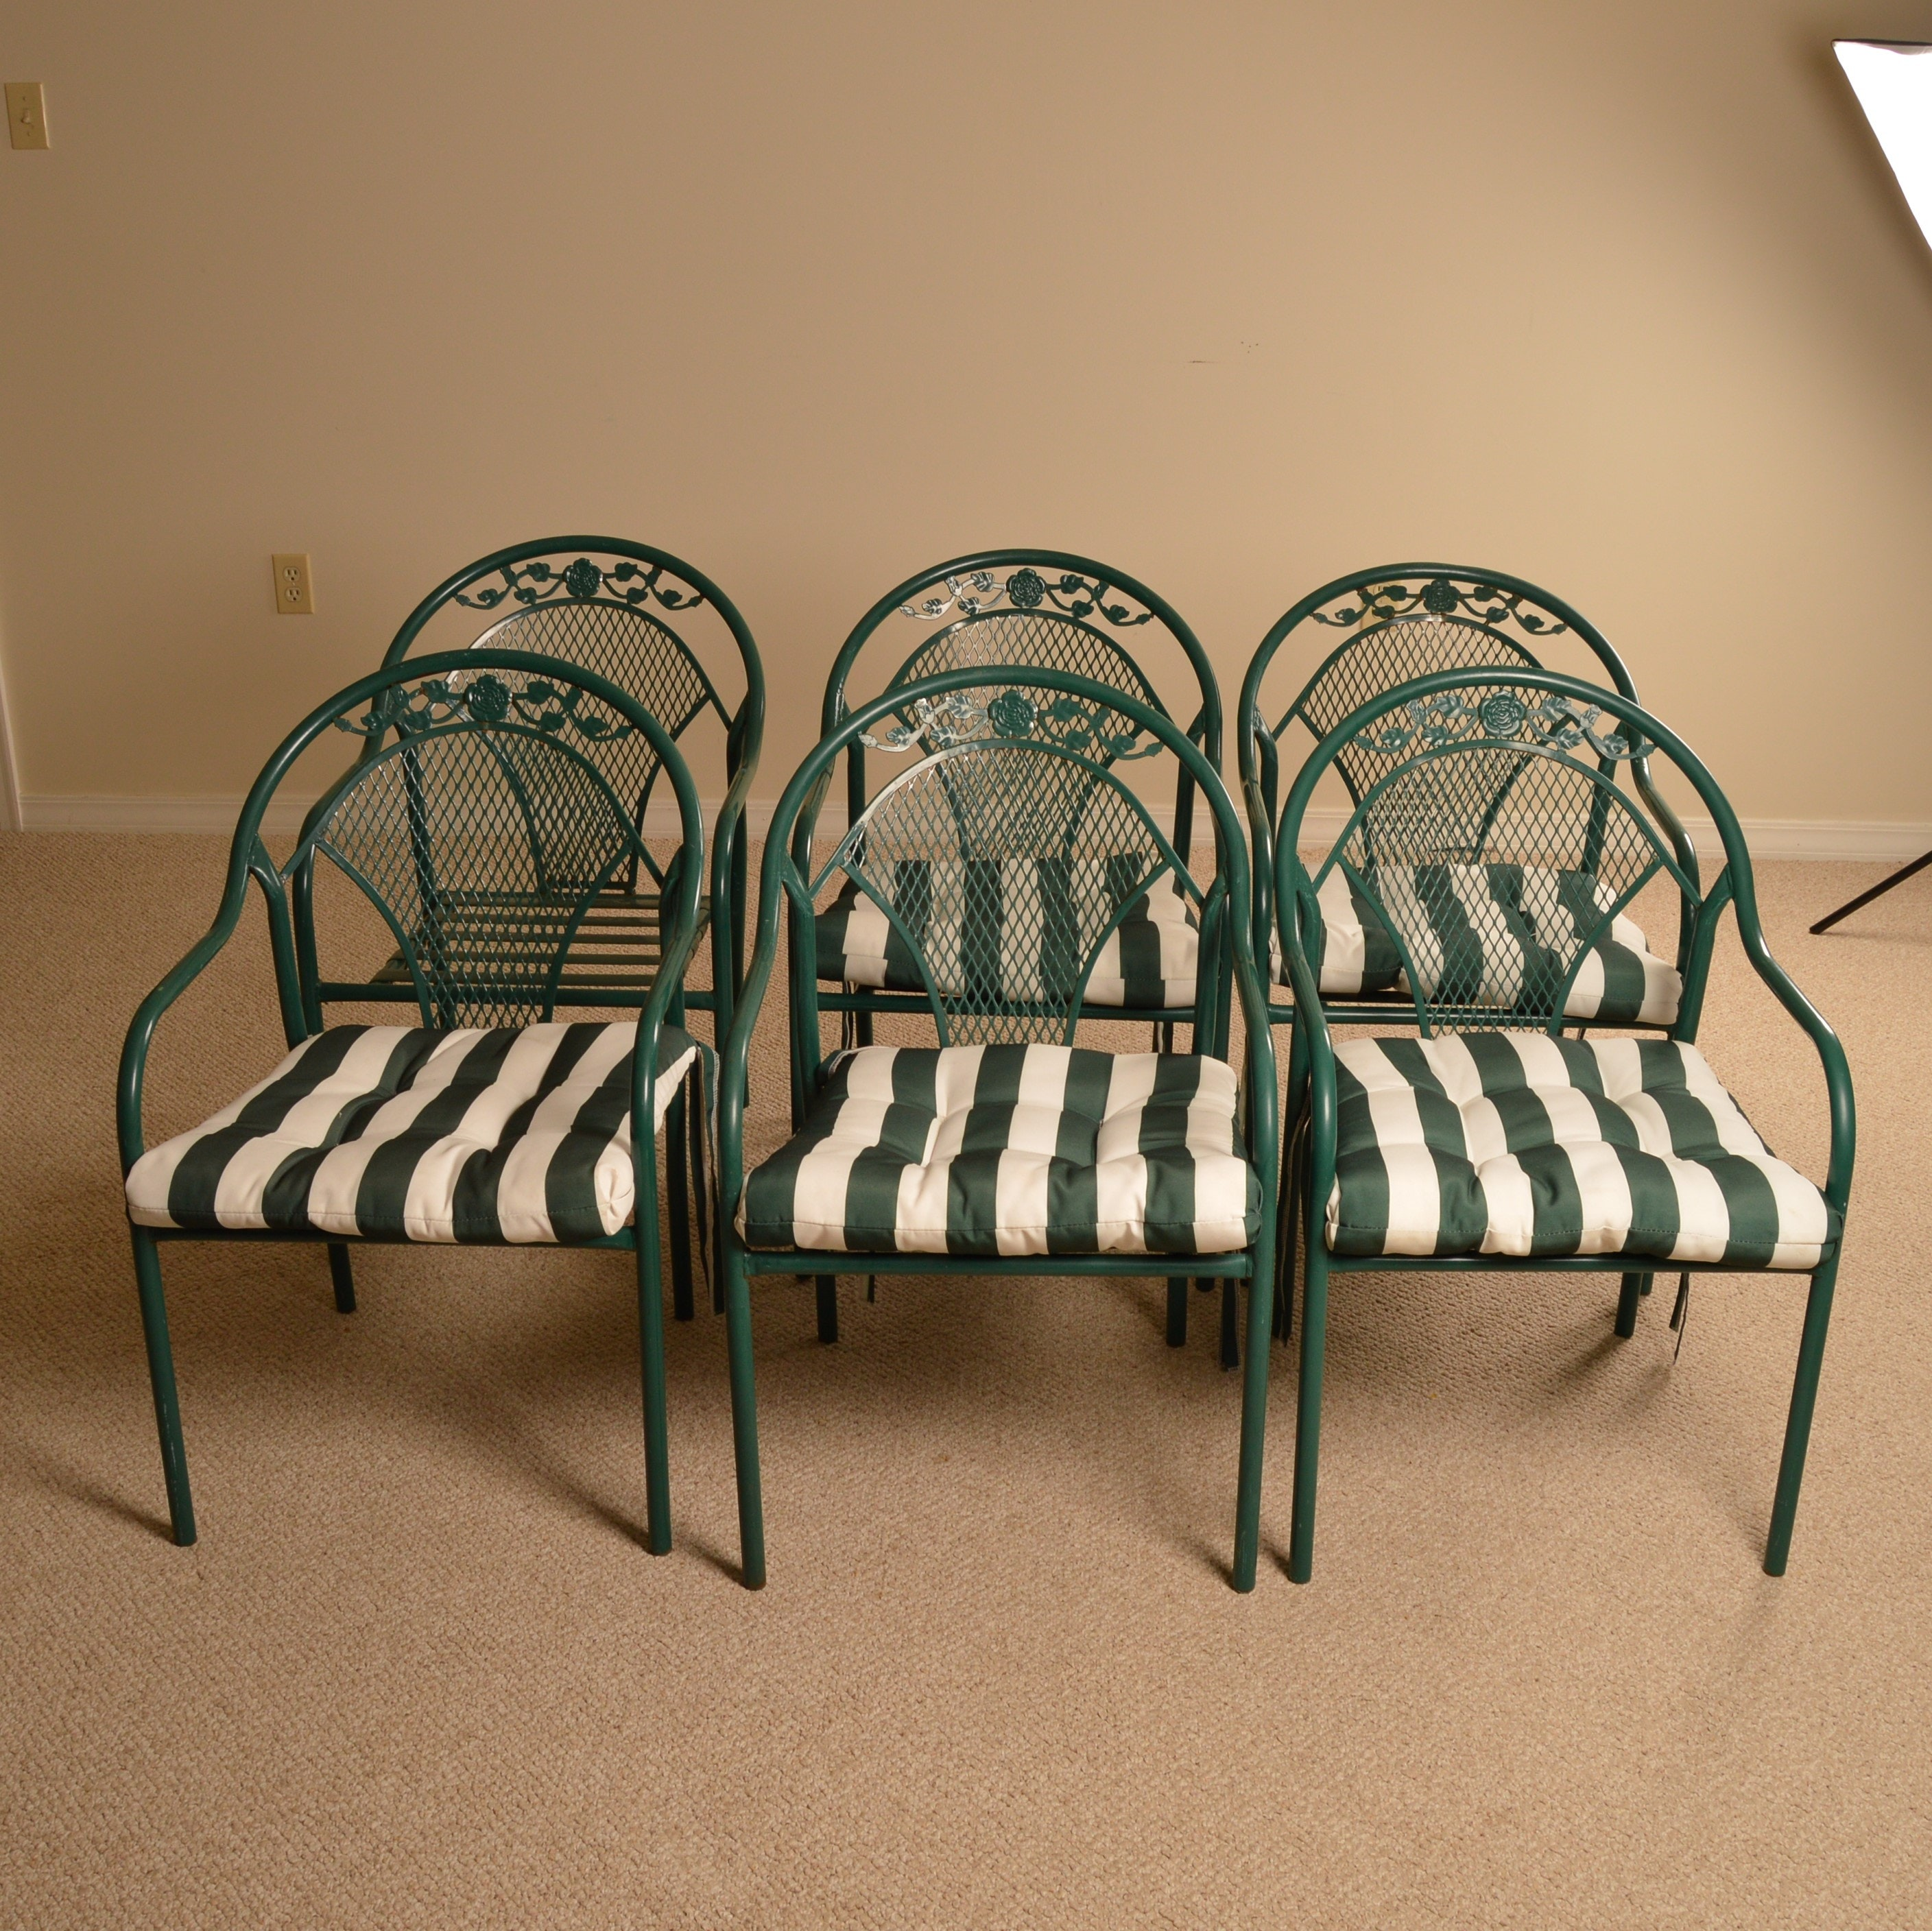 Six Green Metal Patio Chairs with Striped Cushion Seat